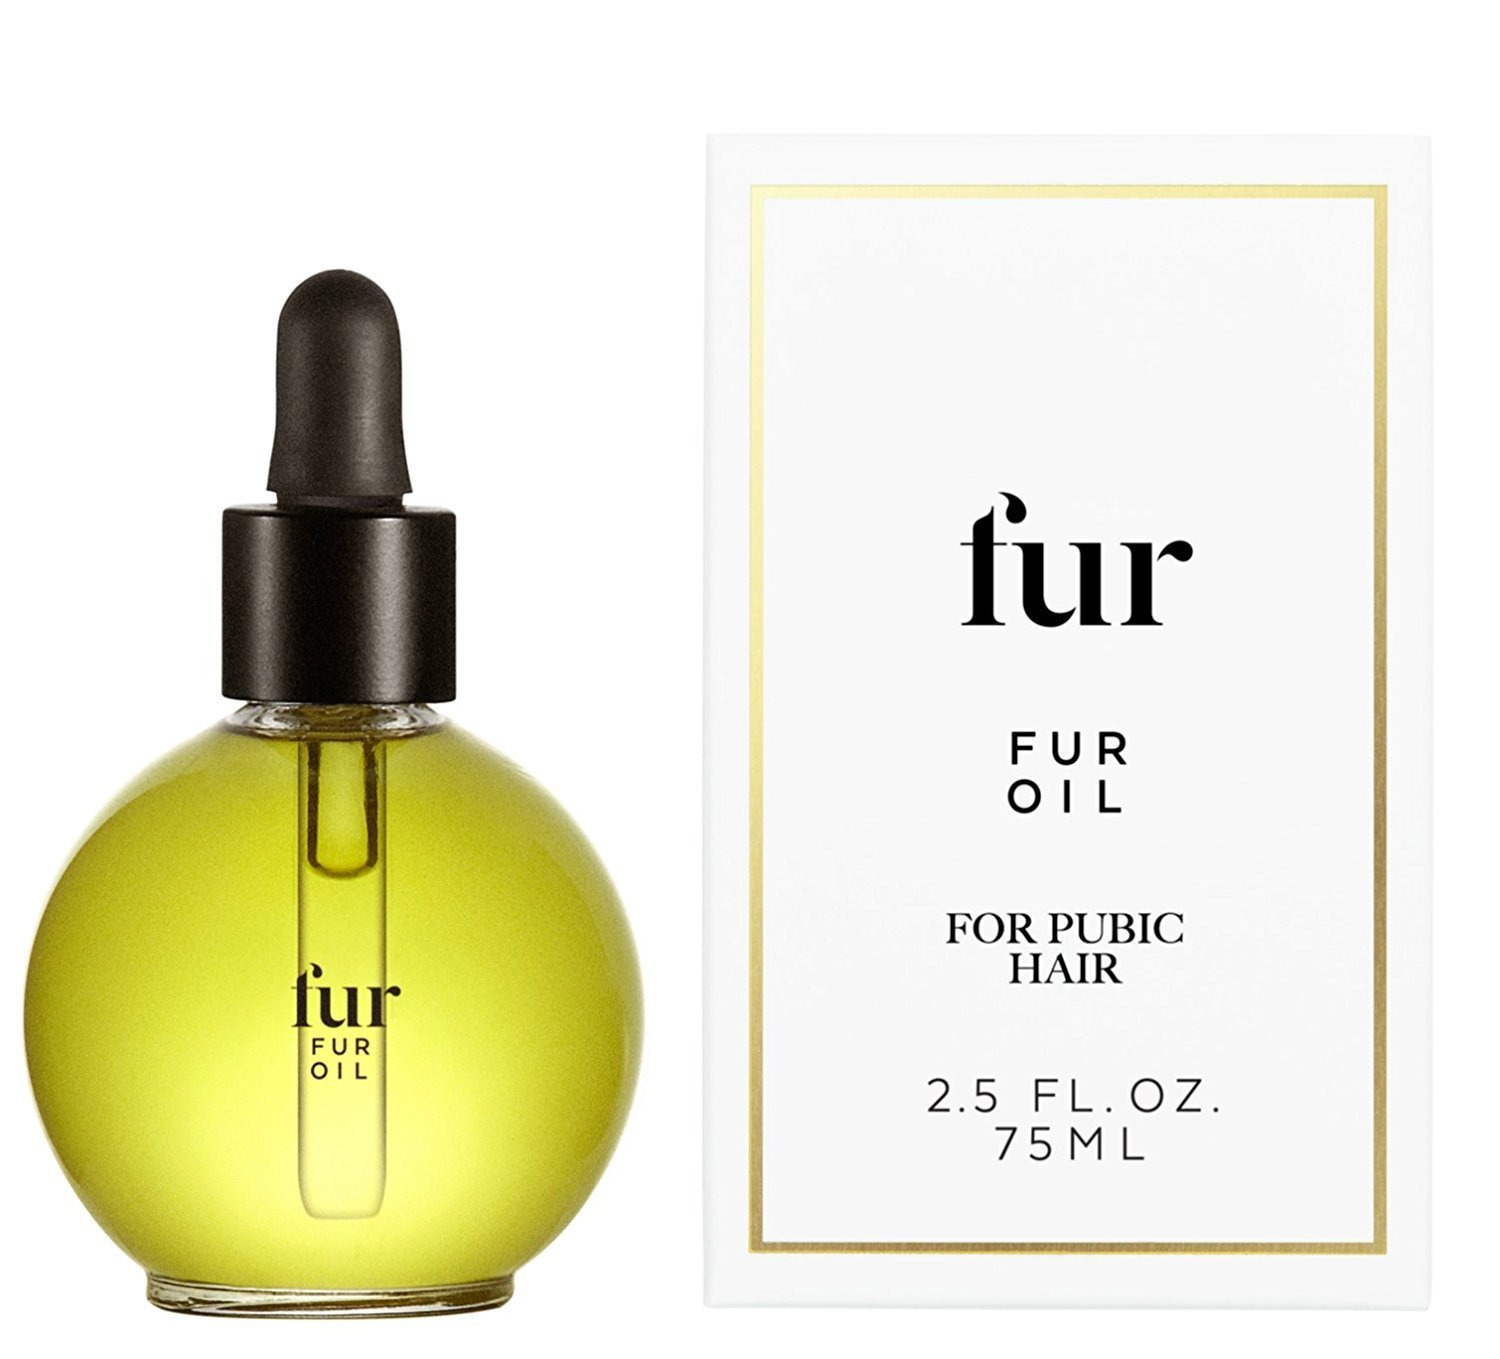 Fur Oil - Good for the Snat